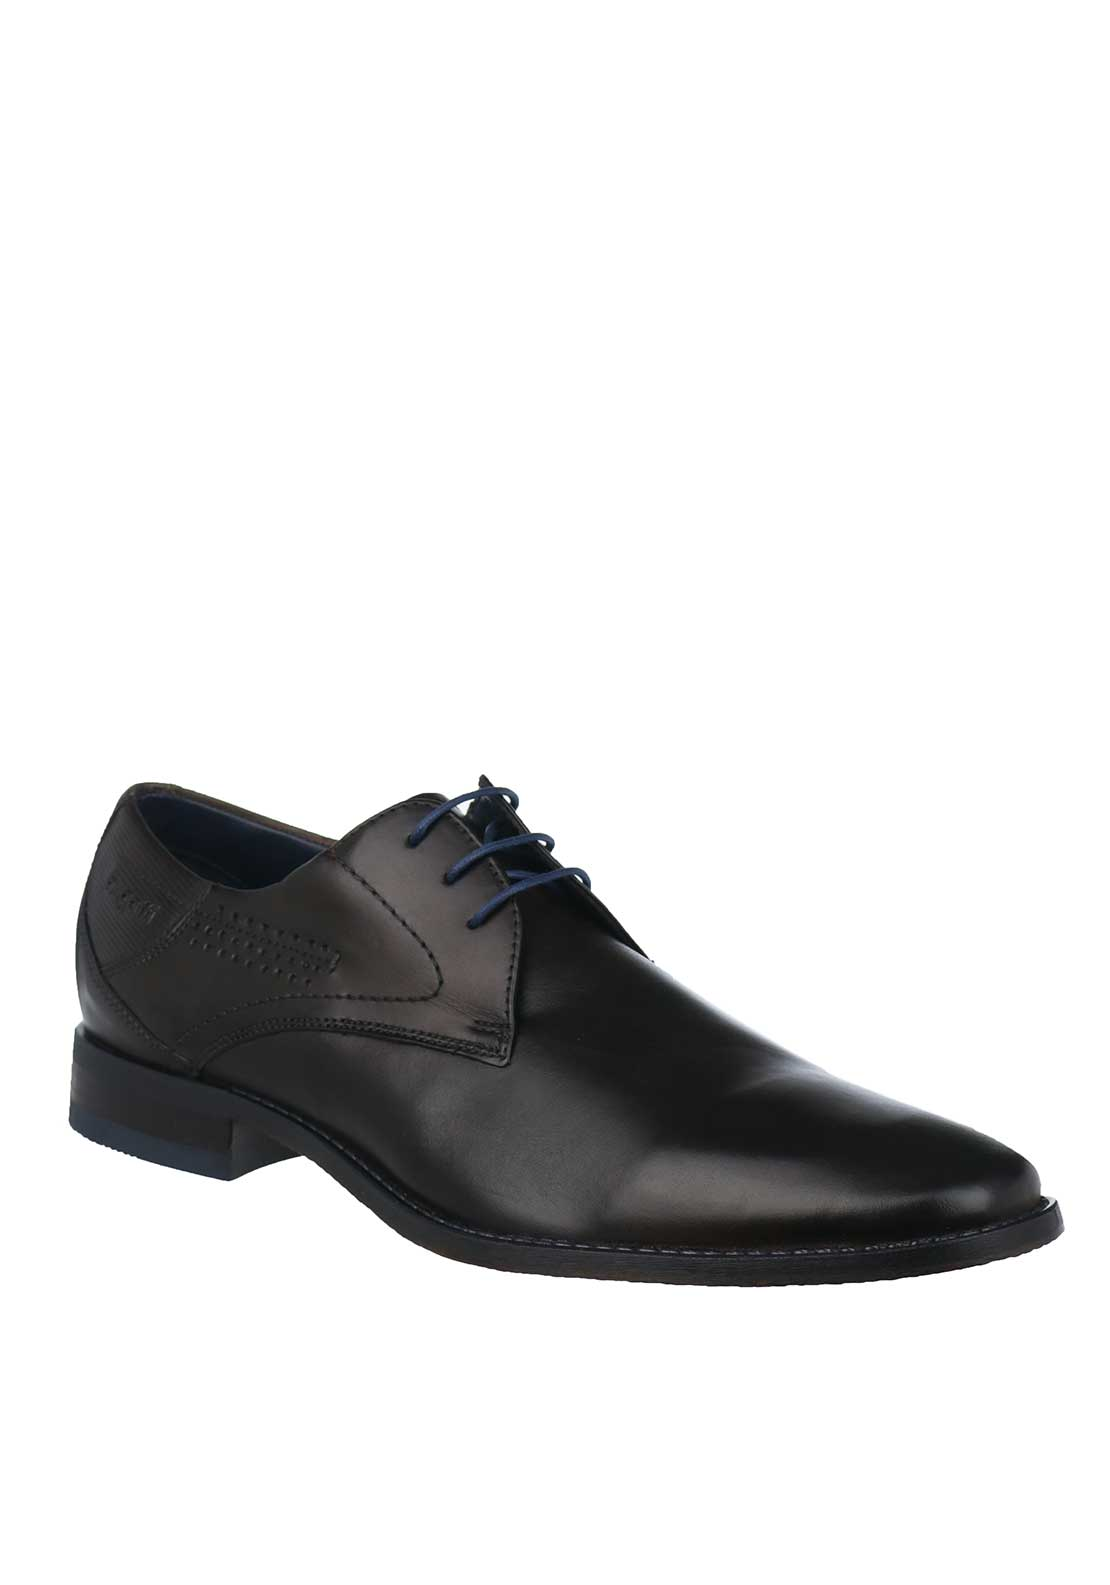 Bugatti Leather Formal Shoes, Dark Brown